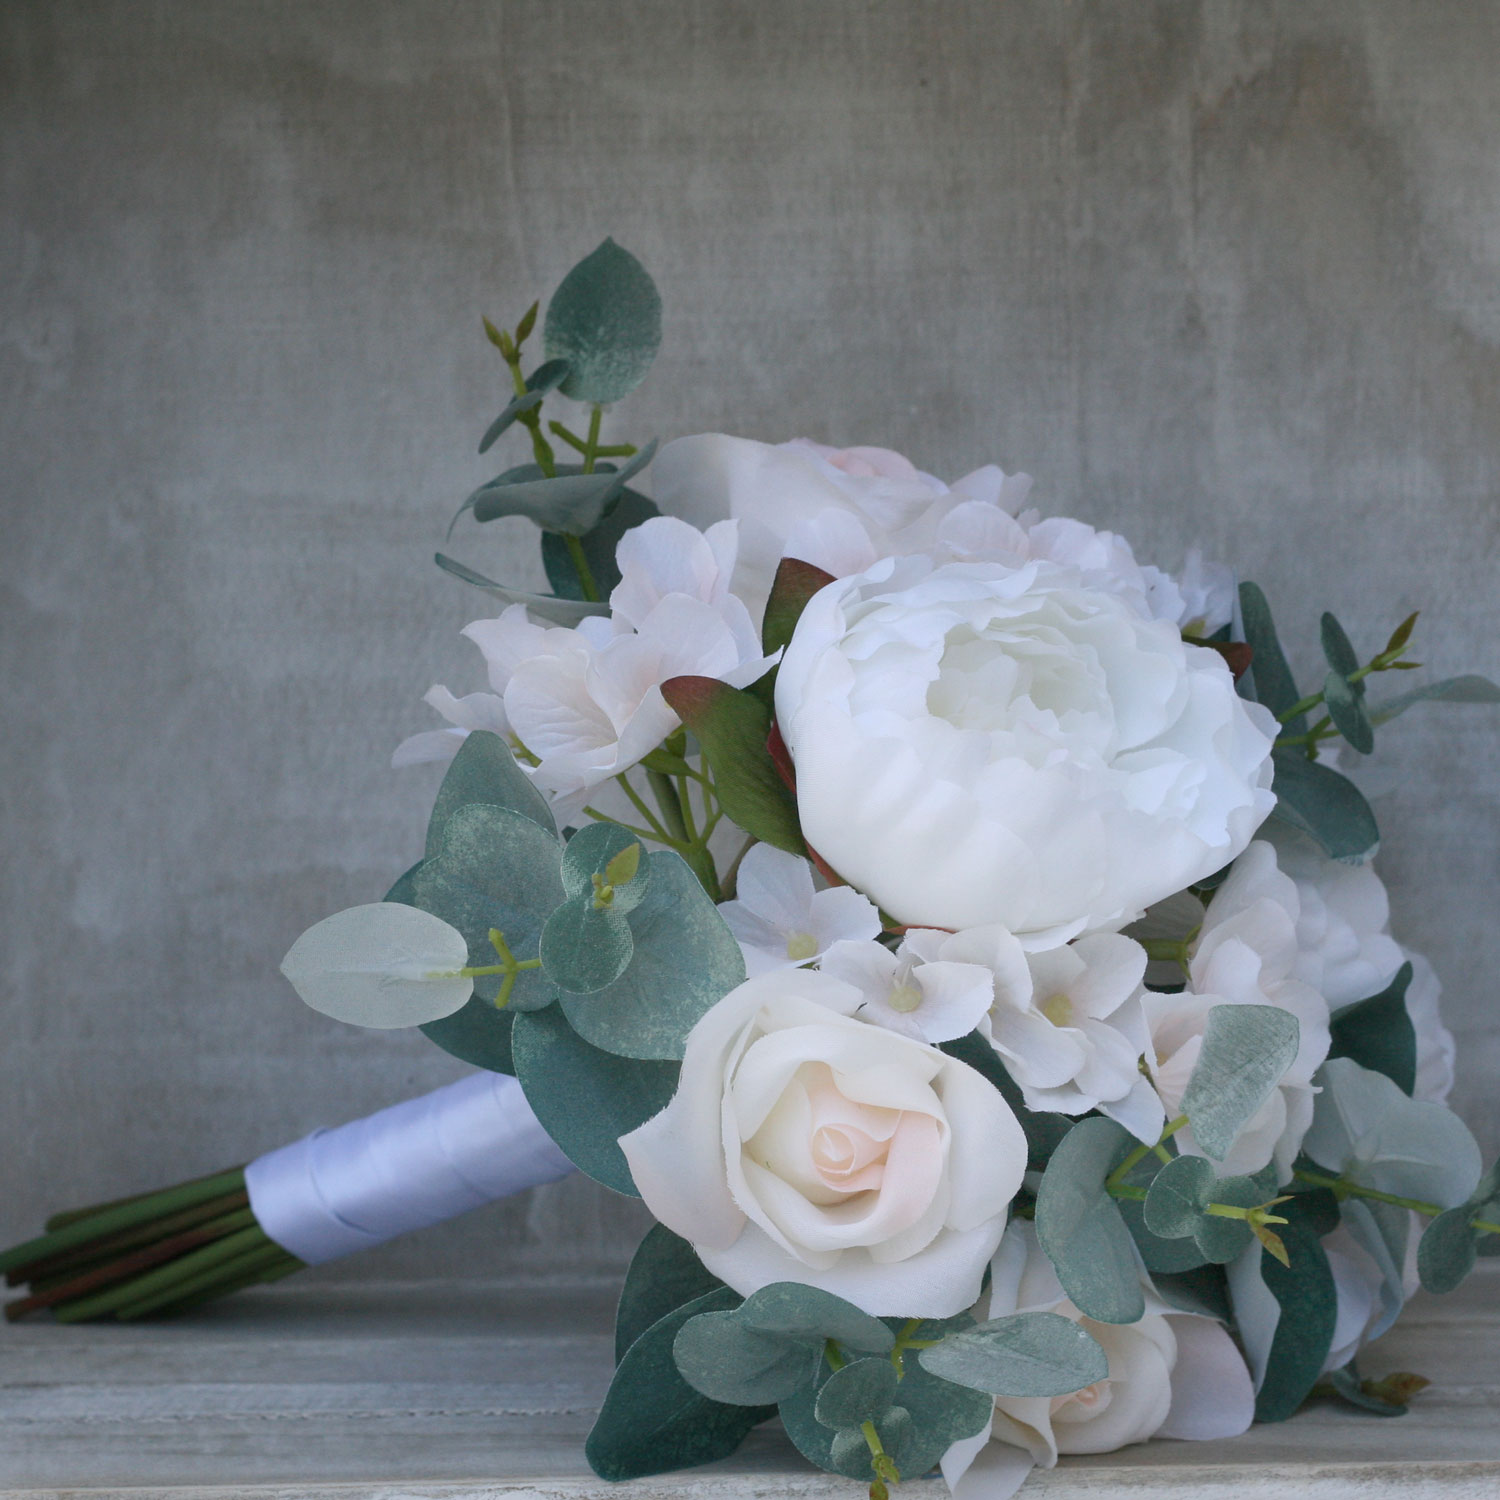 ivory-blush-medium-silk-wedding-bouquets-thebridesbouquet4.jpg